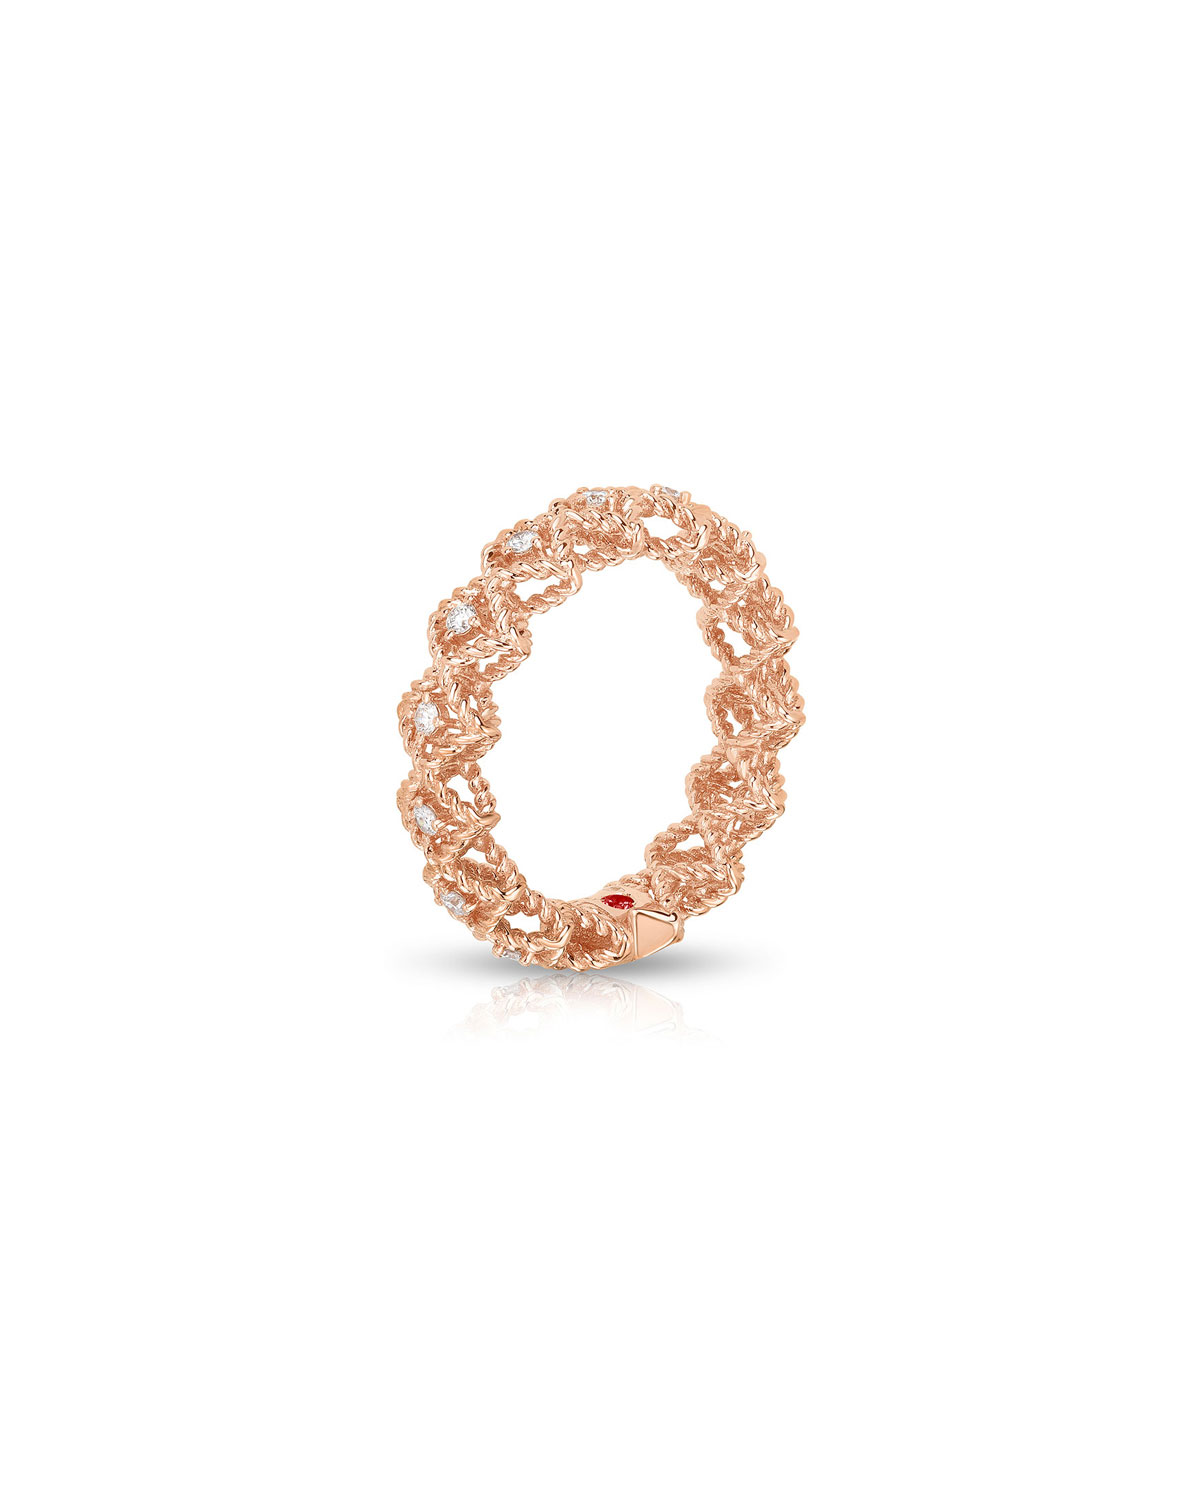 Roberto Coin Barocco Single-Row Diamond Ring in 18K Rose Gold, Size 6